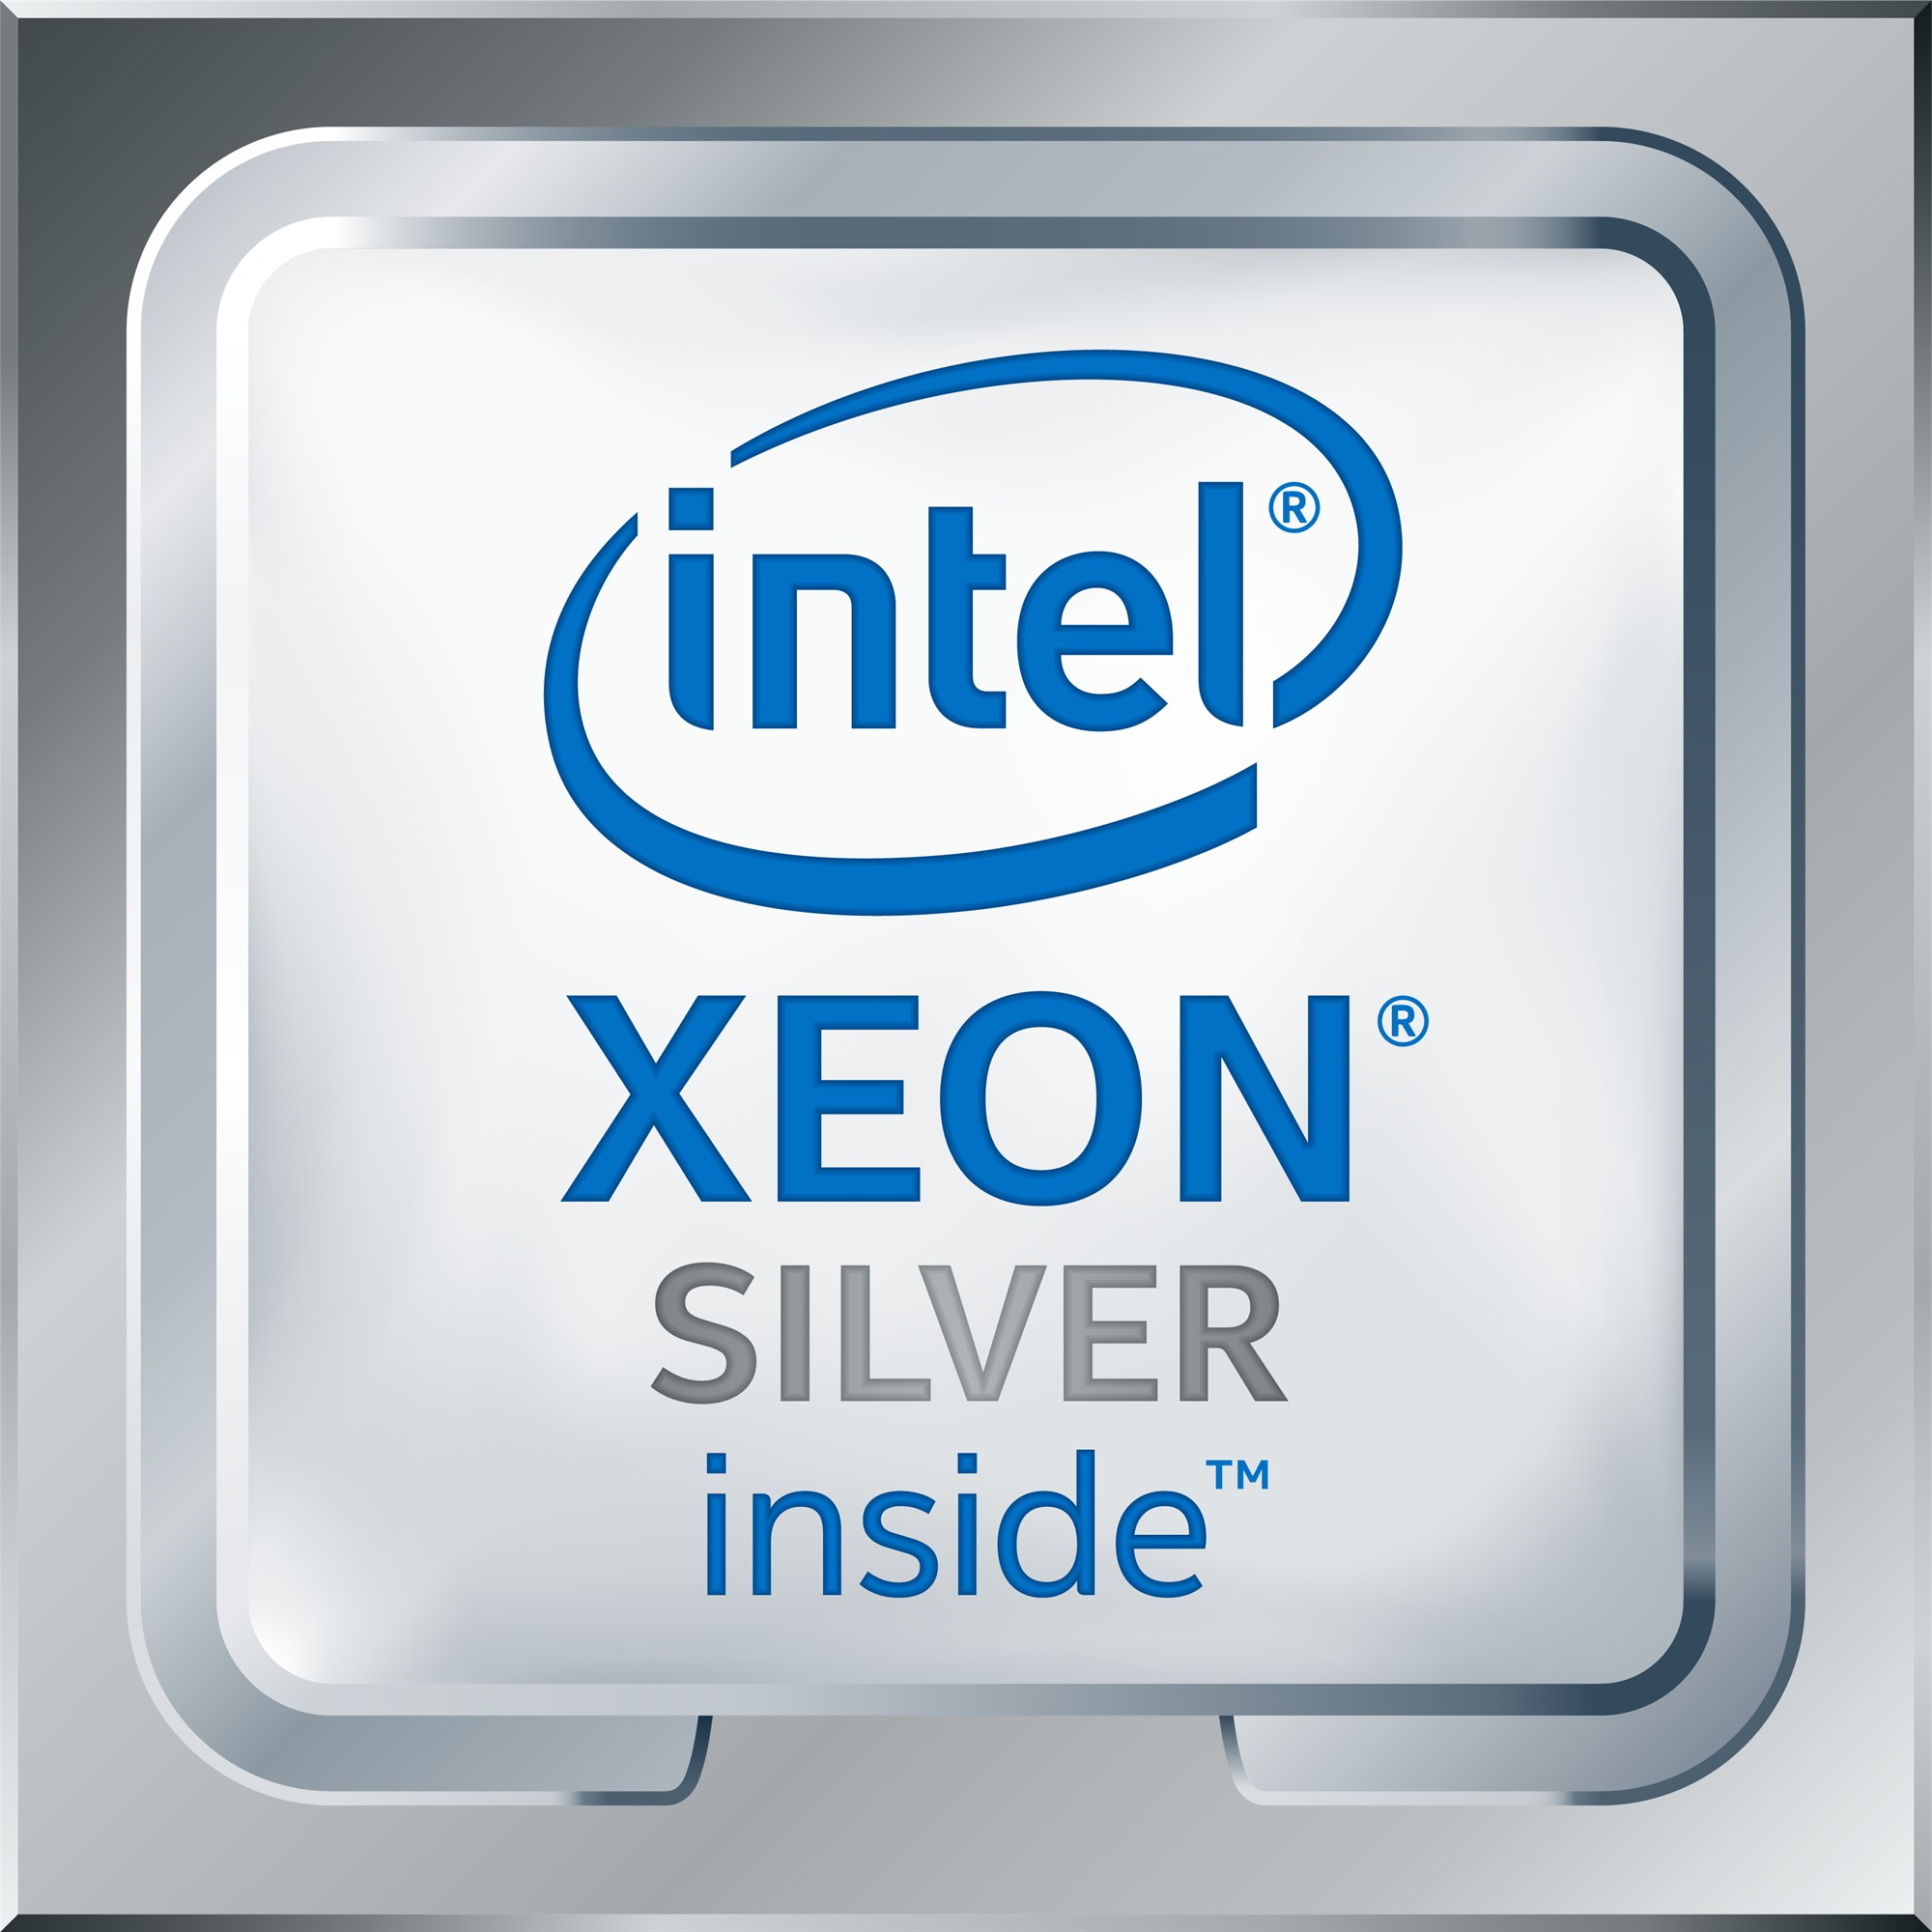 INTEL XEON SILVER 4114 PROCESSOR (13.75M CACHE, 2.20 GHZ) 2.2GHZ 13.75MB L3 BOX